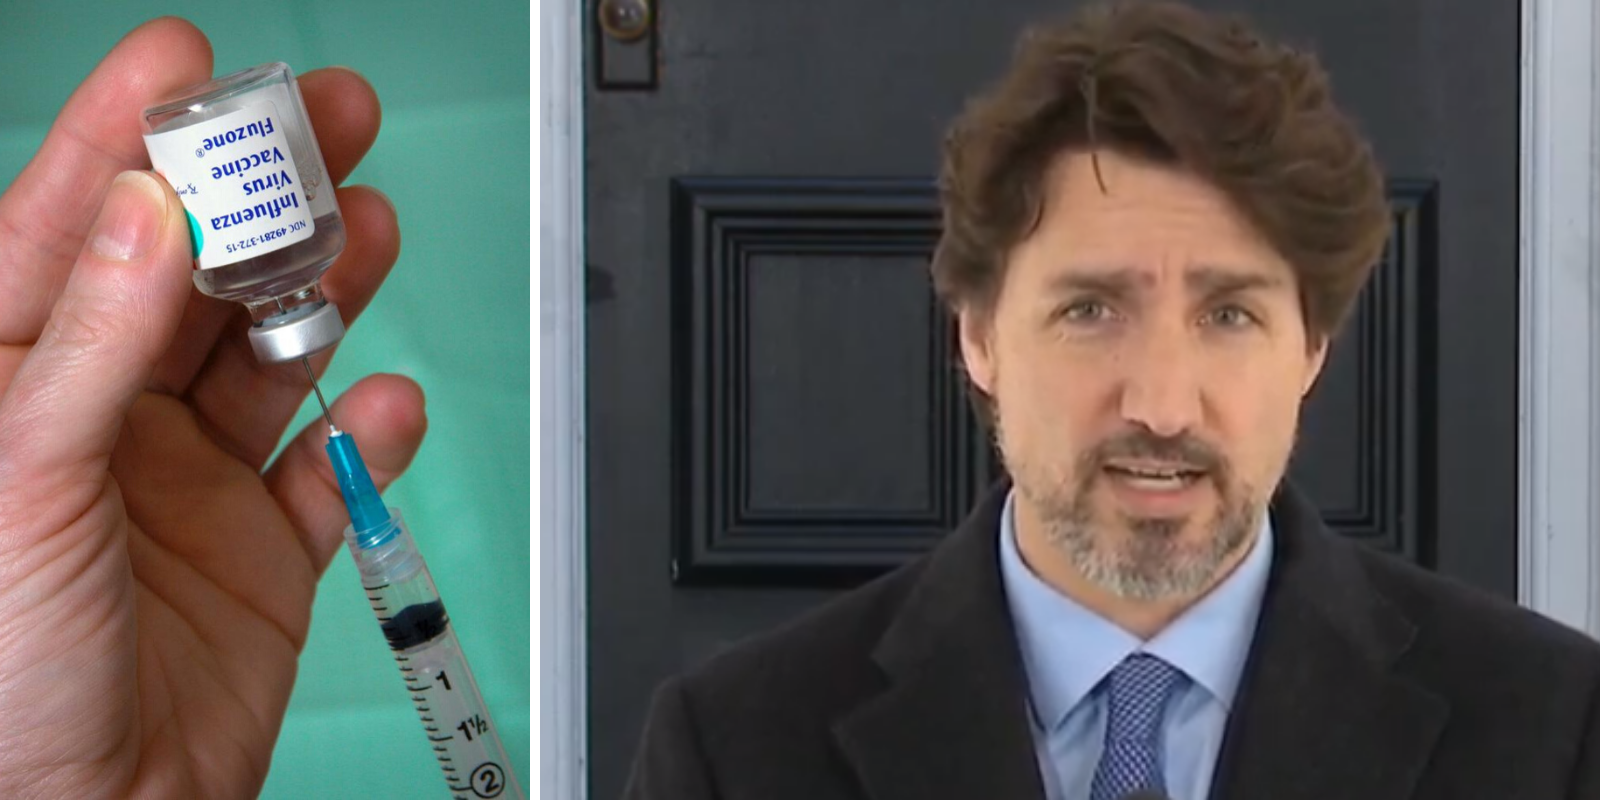 BREAKING: Trudeau says he will have to 'reflect' on mandatory coronavirus vaccine for Canadians